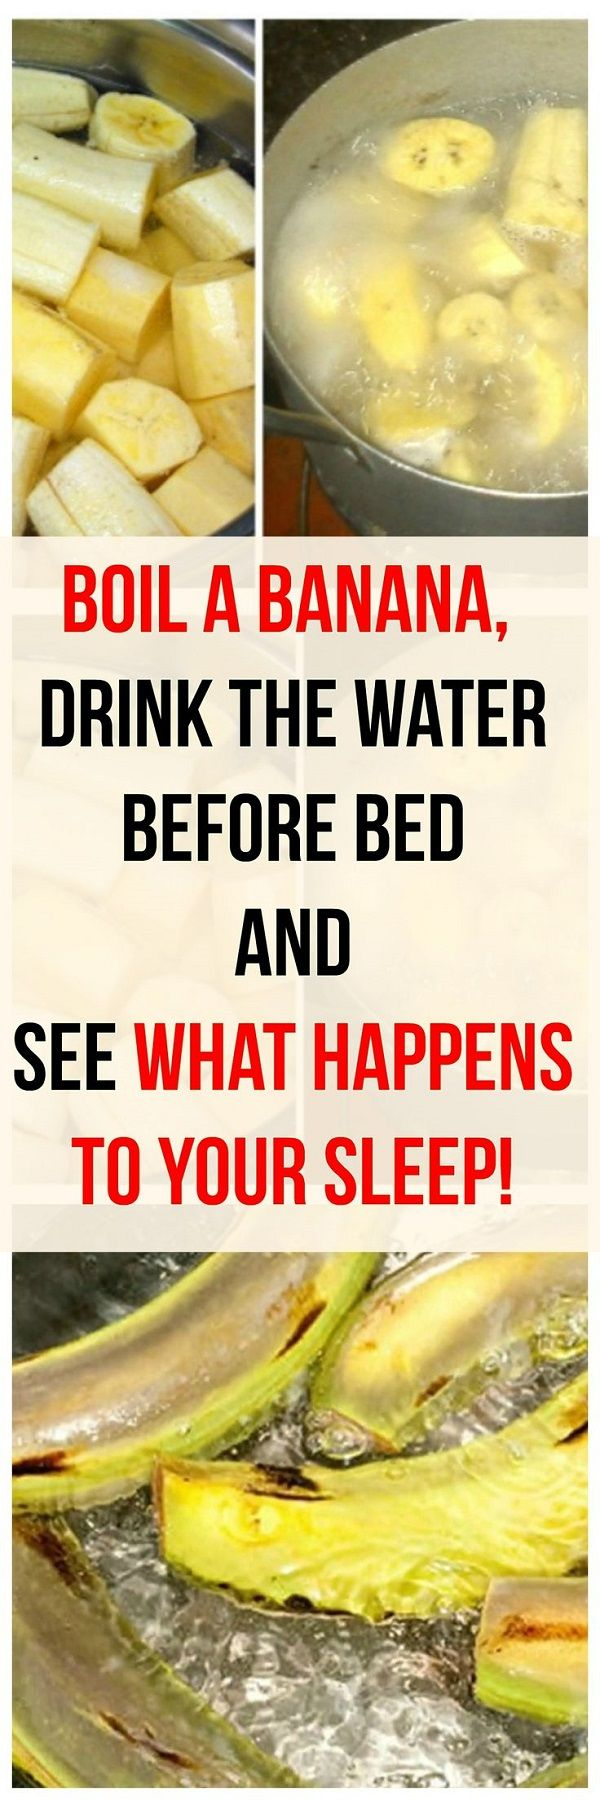 Boil A Banana, Drink The Water Before Bed And See What Happens To Your Sleep!